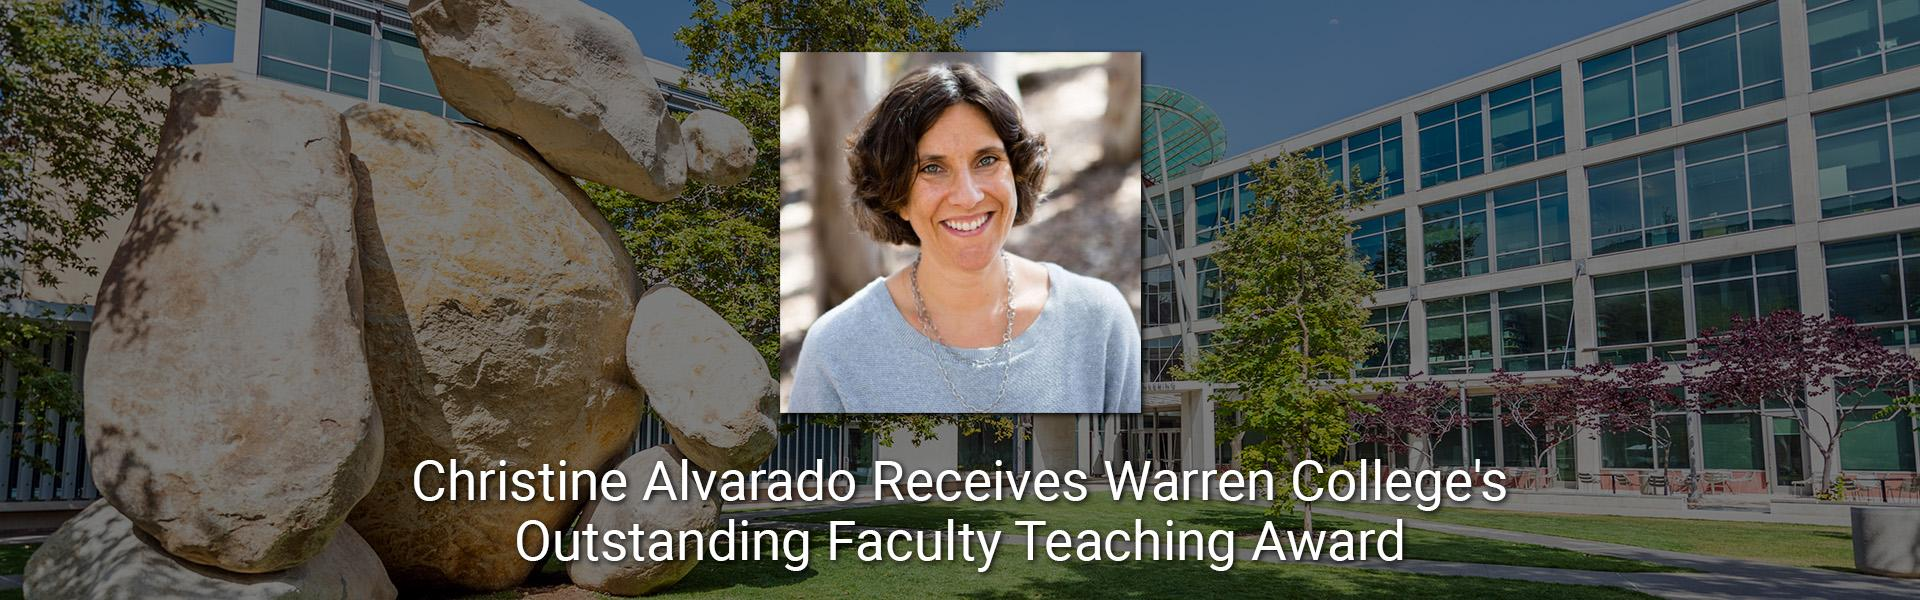 CHRISTINE ALVARADO HONORED FOR OUTSTANDING TEACHING